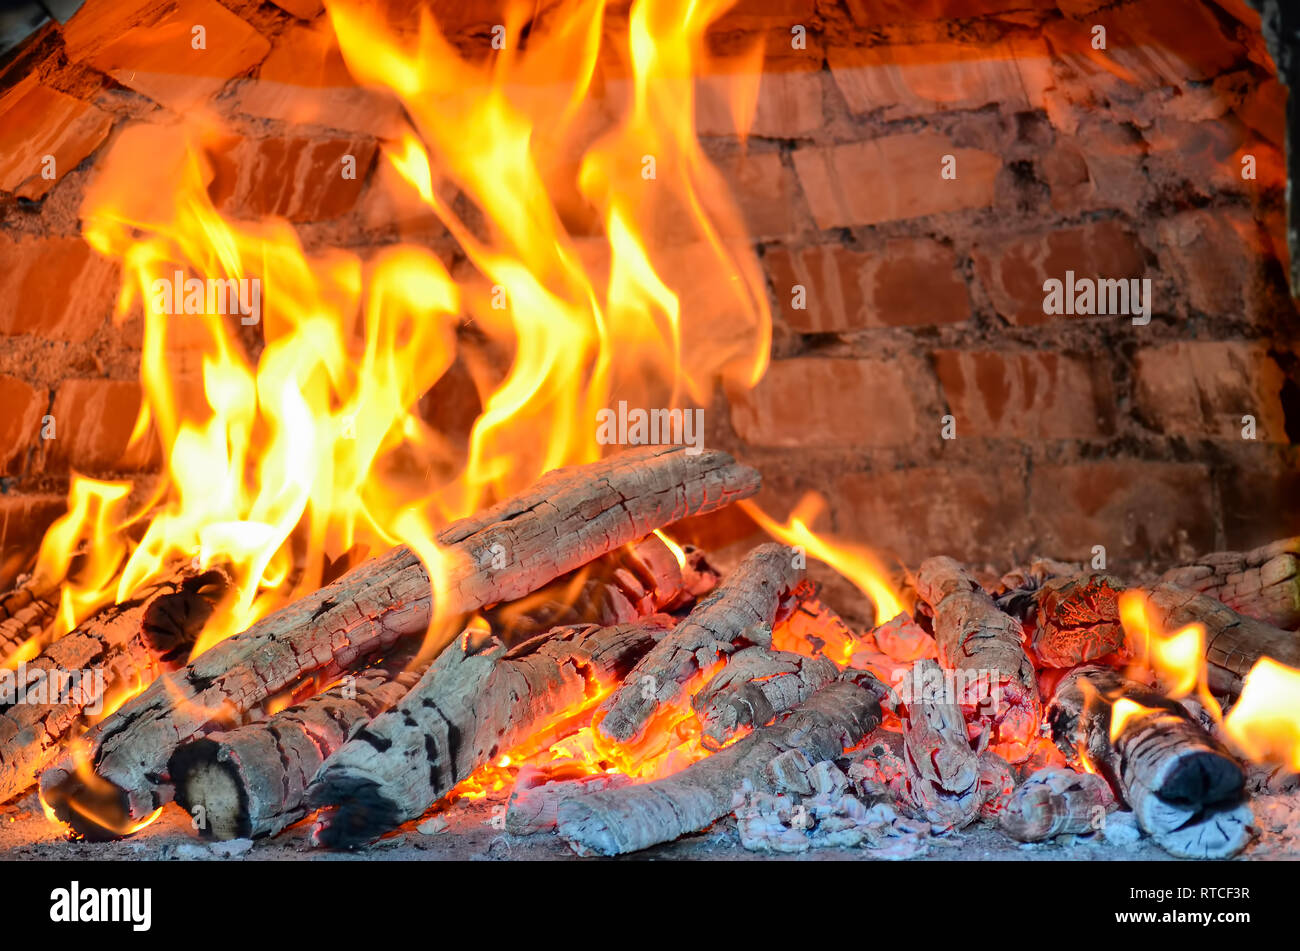 Pizza oven heating by burning beech and birch firewood providing high temperature and special smell, almoust done - Stock Image